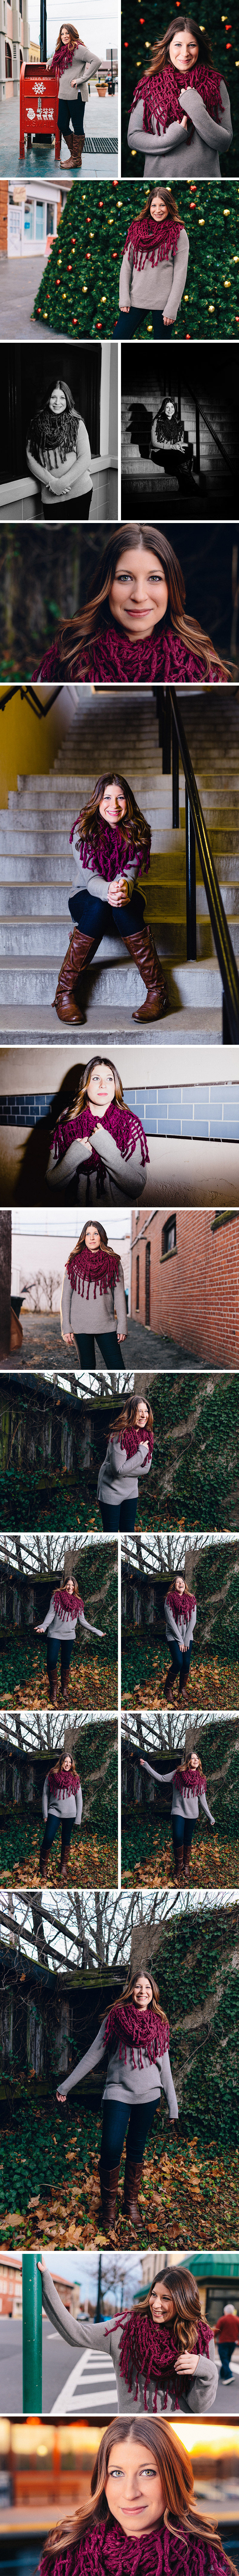 Lifestyle photos with Carly in Somerville, NJ